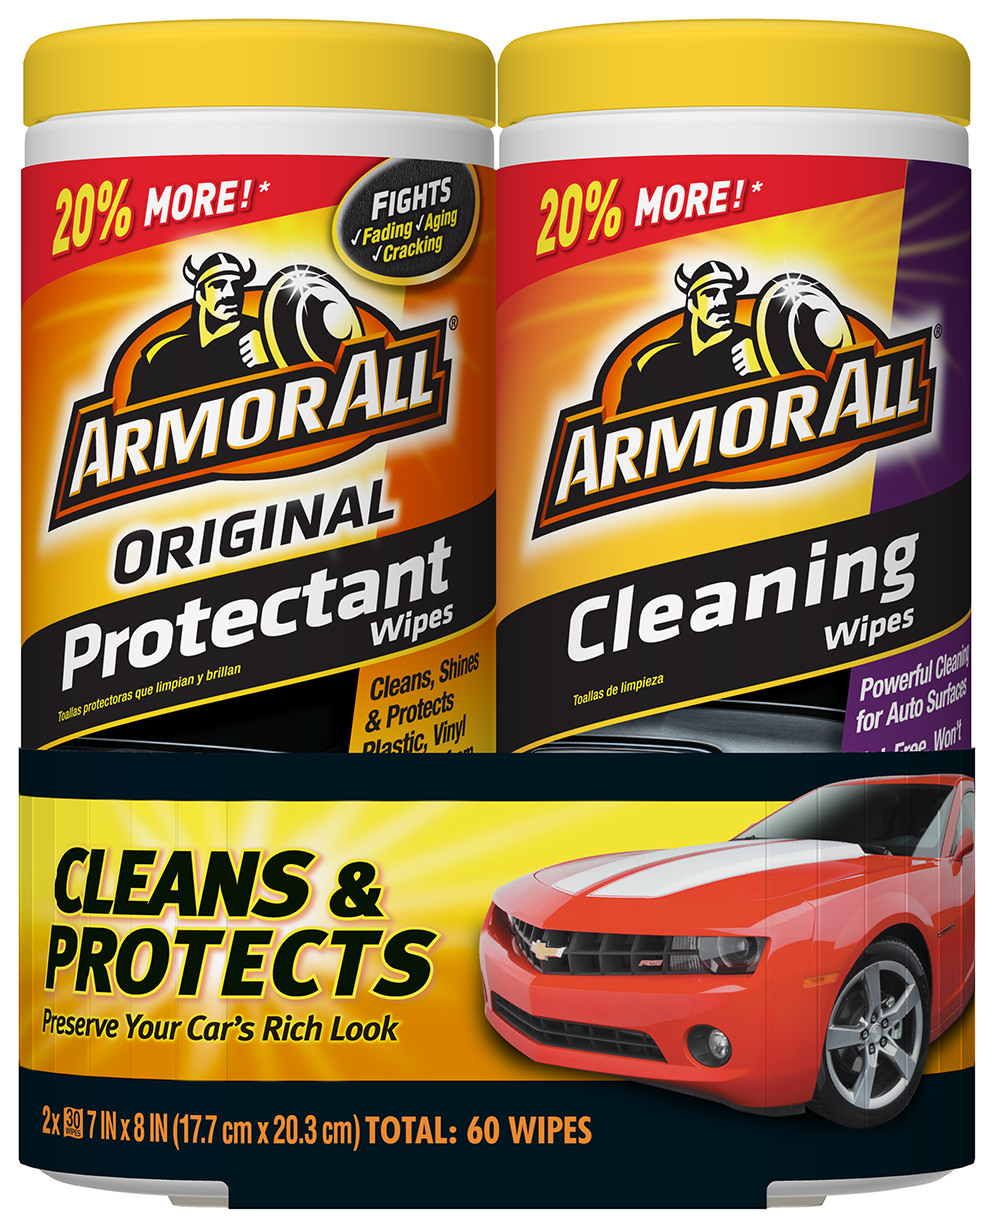 Armor All Original Protectant & Cleaning Wipes Twin Pack (2 x 30 count) by Armor All